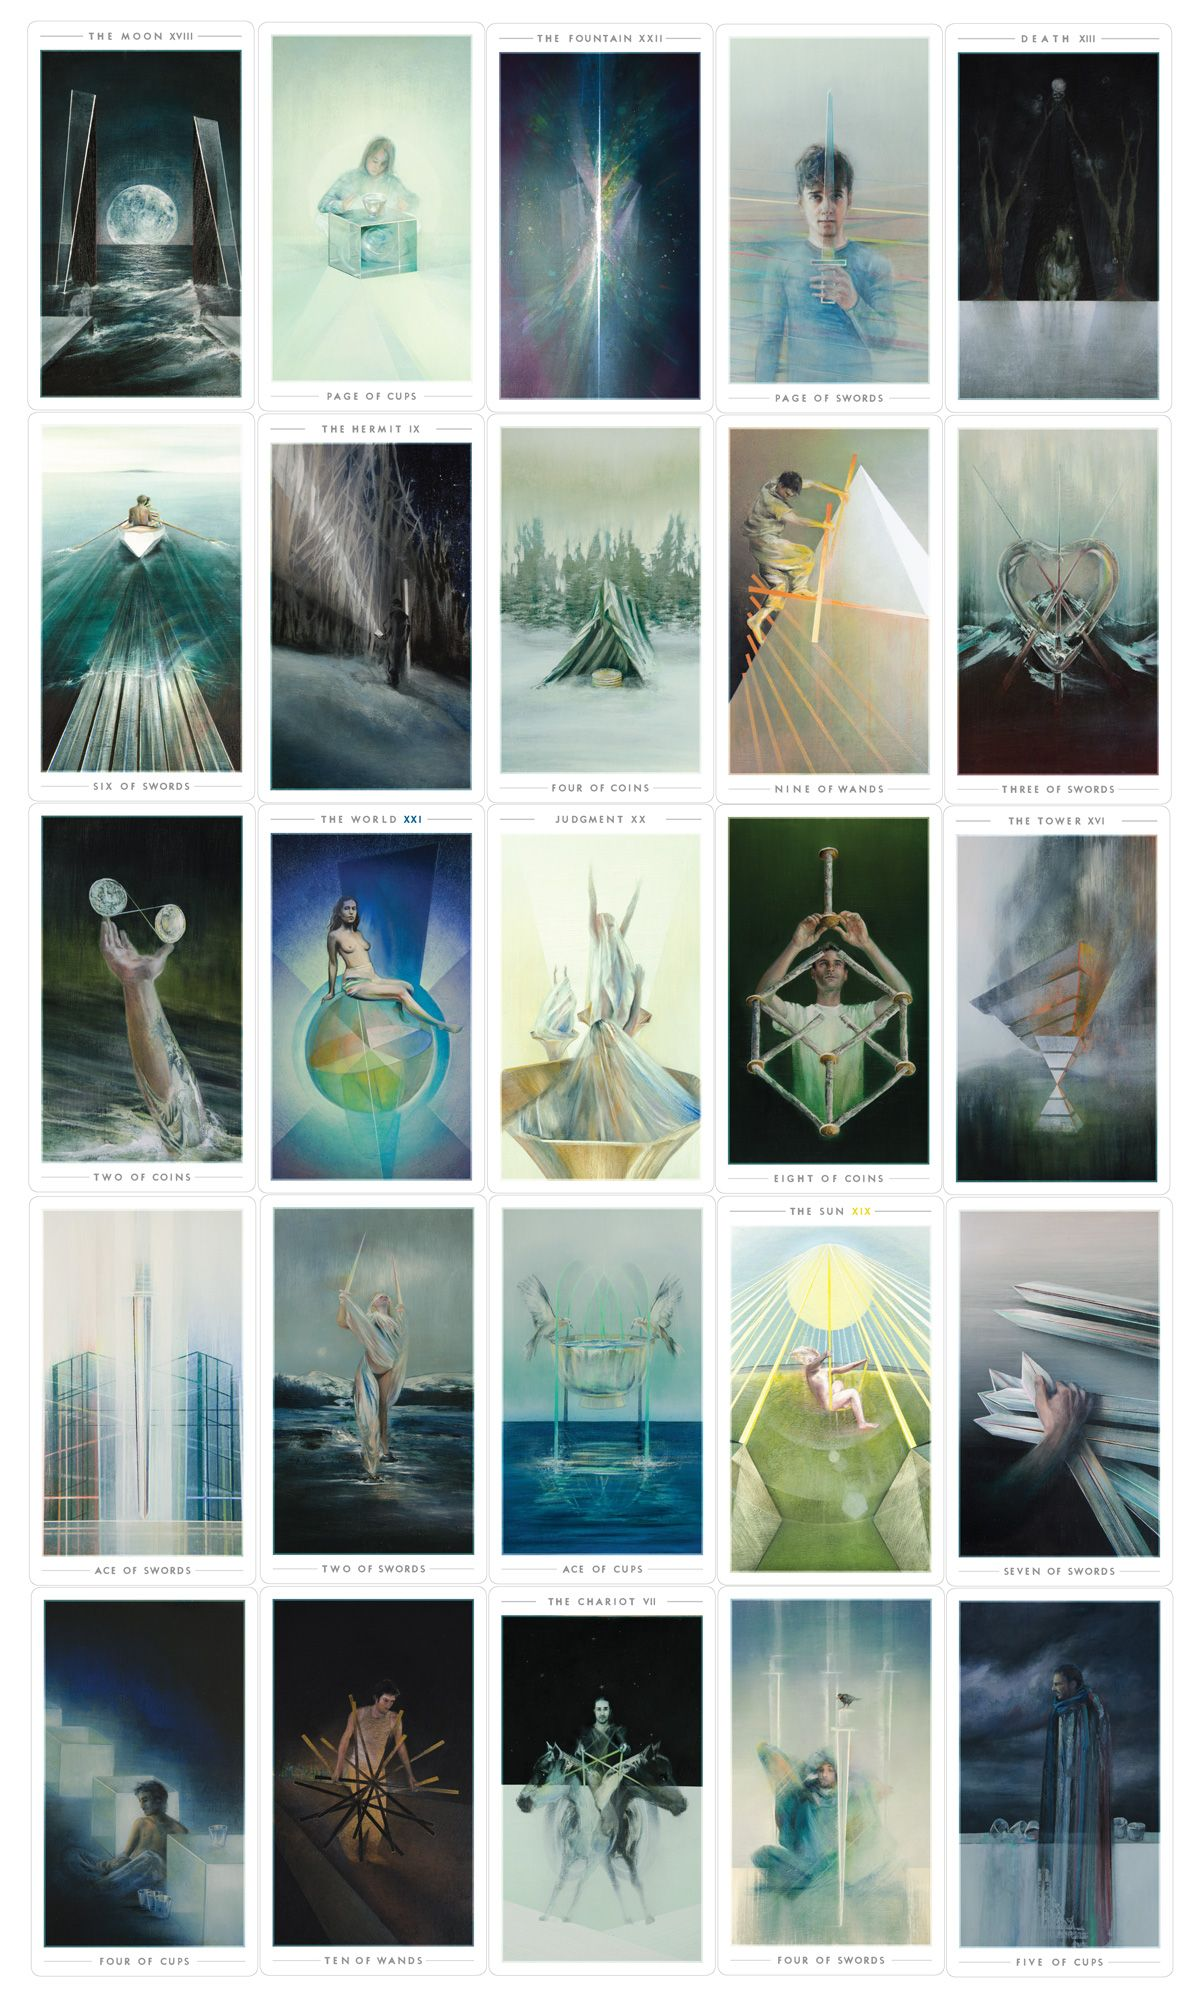 The Fountain Tarot https://www.kickstarter.com/projects/756996328/the-fountain-tarot-a-contemporary-standard